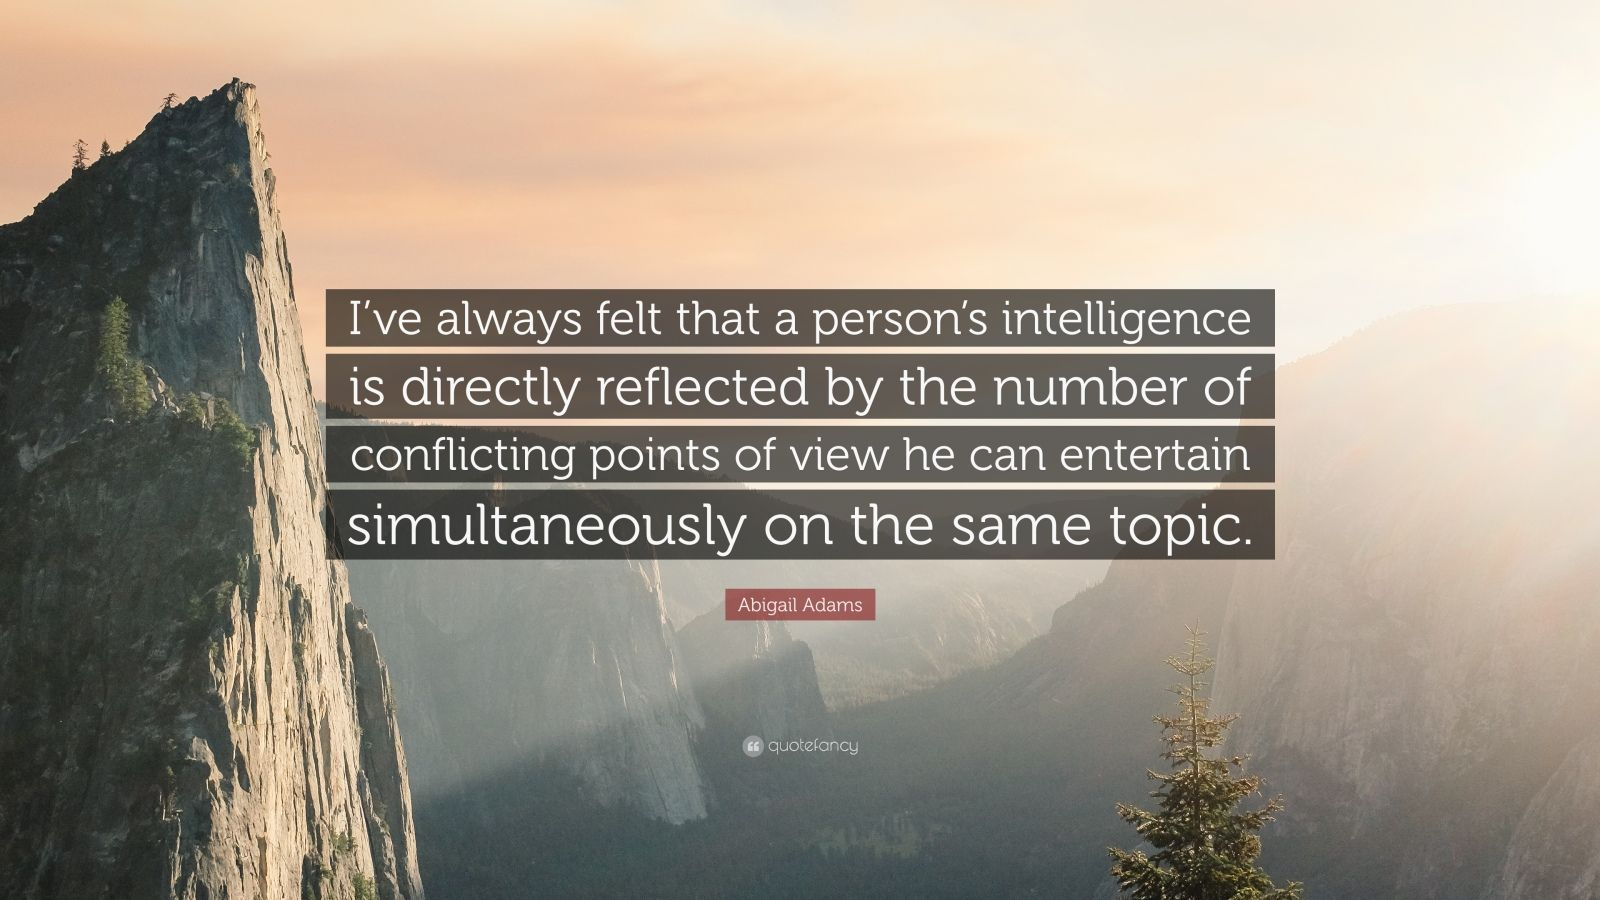 """Abigail Adams Quote: """"I've always felt that a person's intelligence is directly reflected by the number of conflicting points of view he can entertain simultaneously on the same topic."""""""